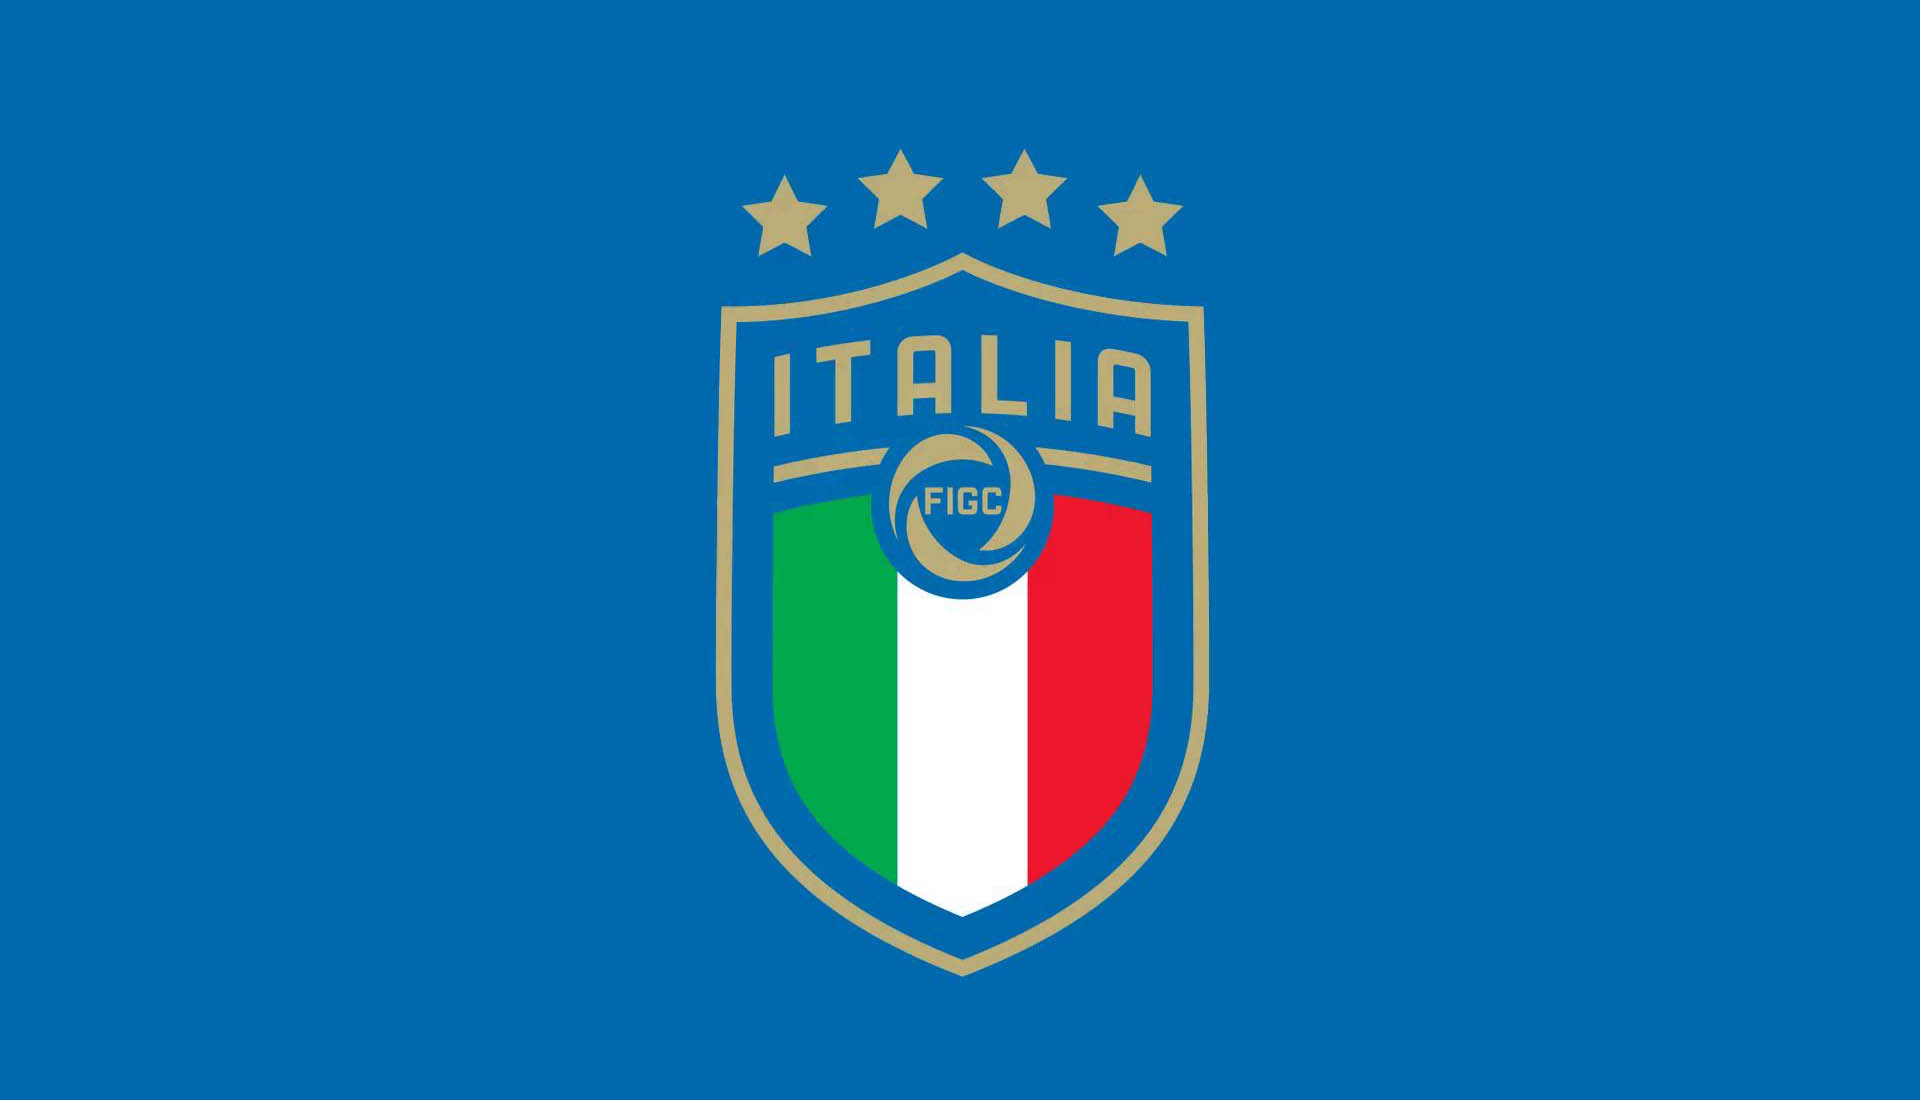 Italian football federation (FIGC)